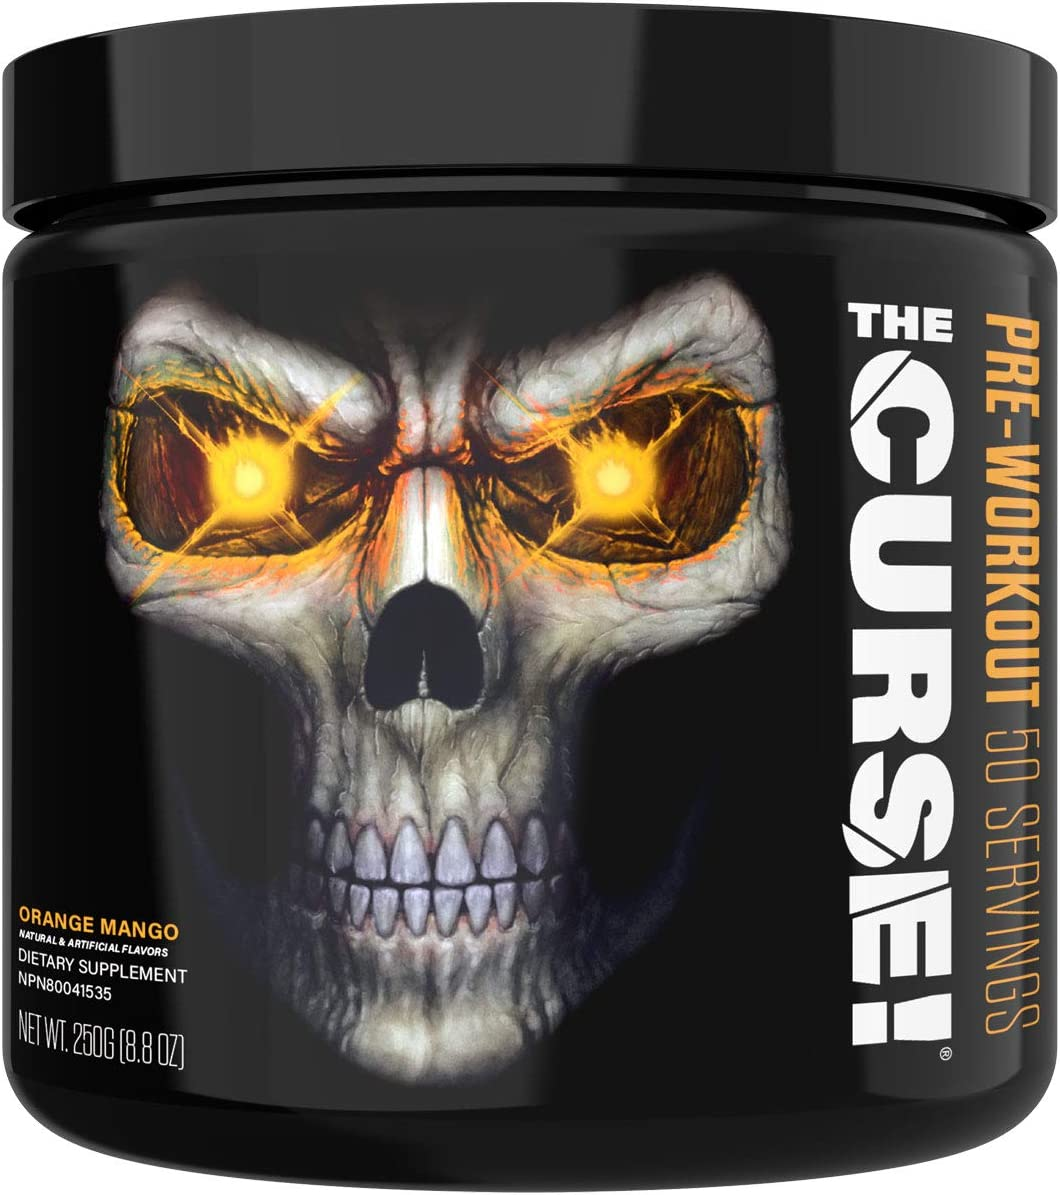 Pathogen Pre Workout – Energy Boosting Preworkout Powder, Energy Inducing Stimulants and Muscle Pump Evoking Compounds, Double Barrel Berry, 336g